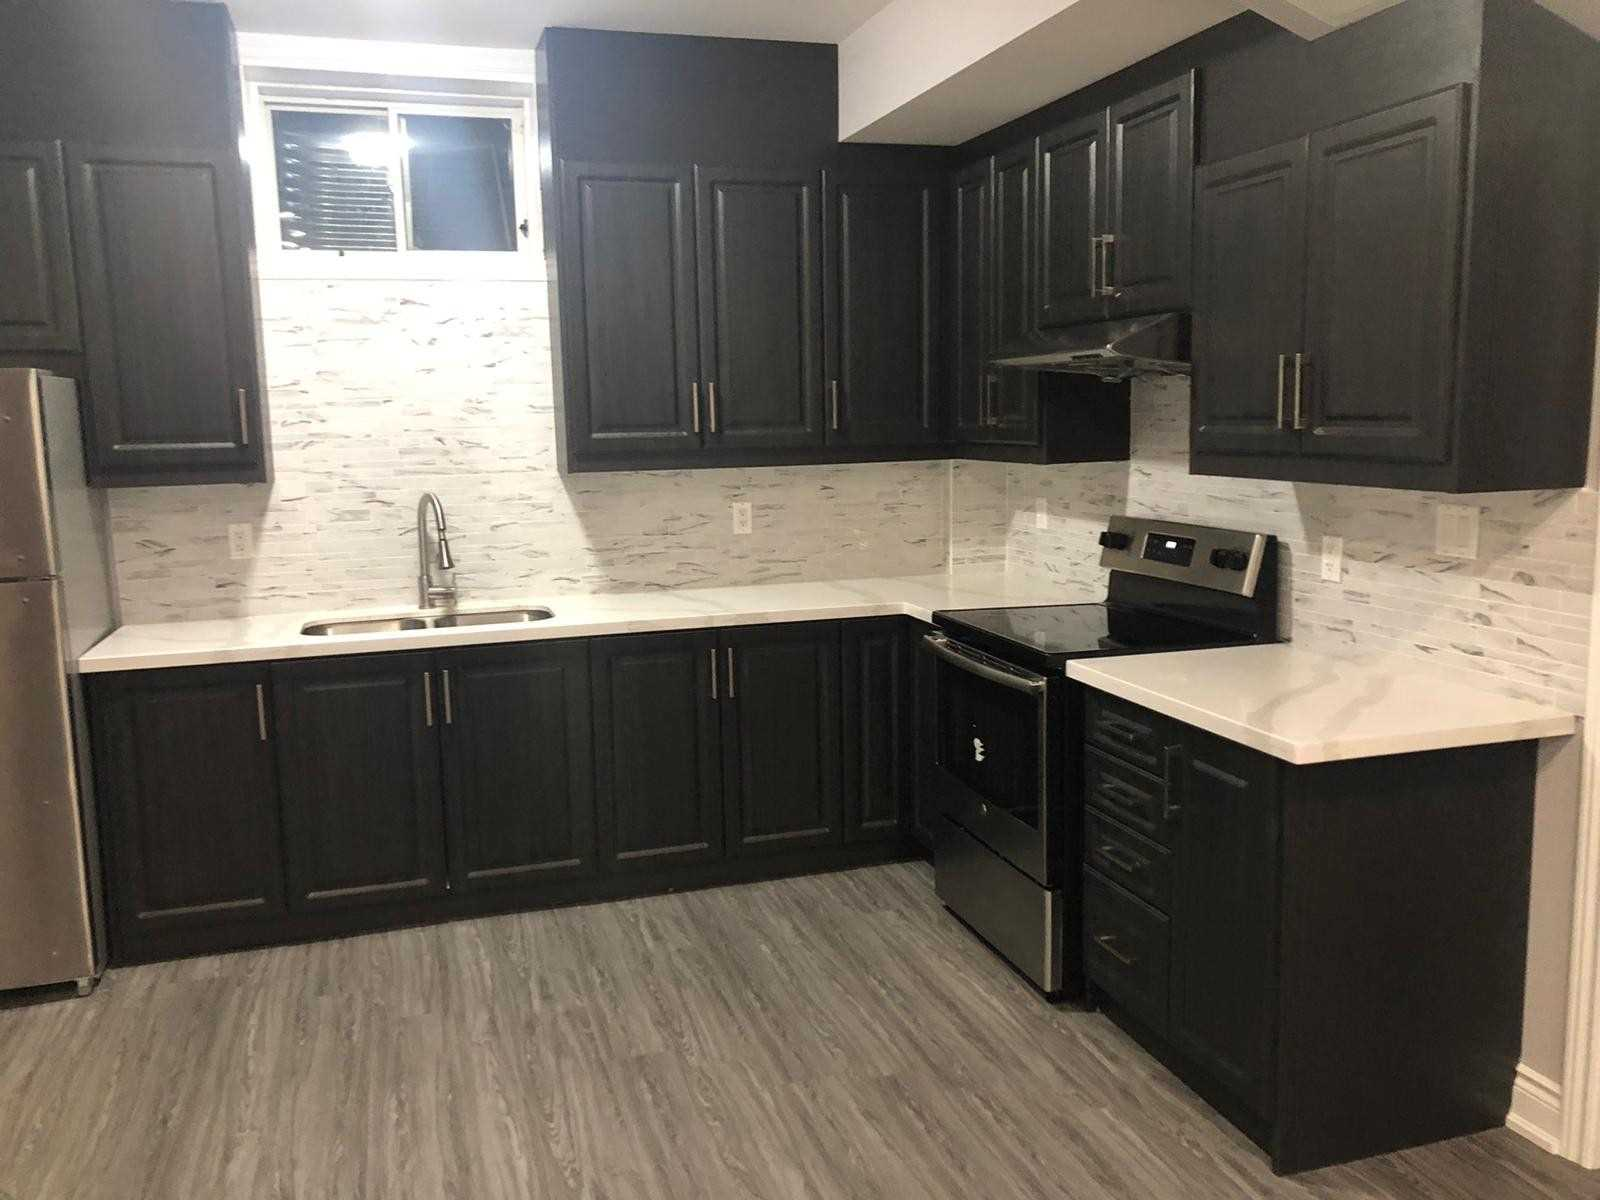 Brand New Legal Basement: Beautiful & A Spacious 2 Bedroom Basement Apartment With 1 4Pc Washroom. Brand New Appliances And Pot Lights. Separate Entrance To Bsmt Apartment 1 Parking Spot. Prime Location. Great Location, Family Friendly Neighbourhood, Walking Distance To School, Transit, Shopping Plaza, And Banks. Utilities Are Included.